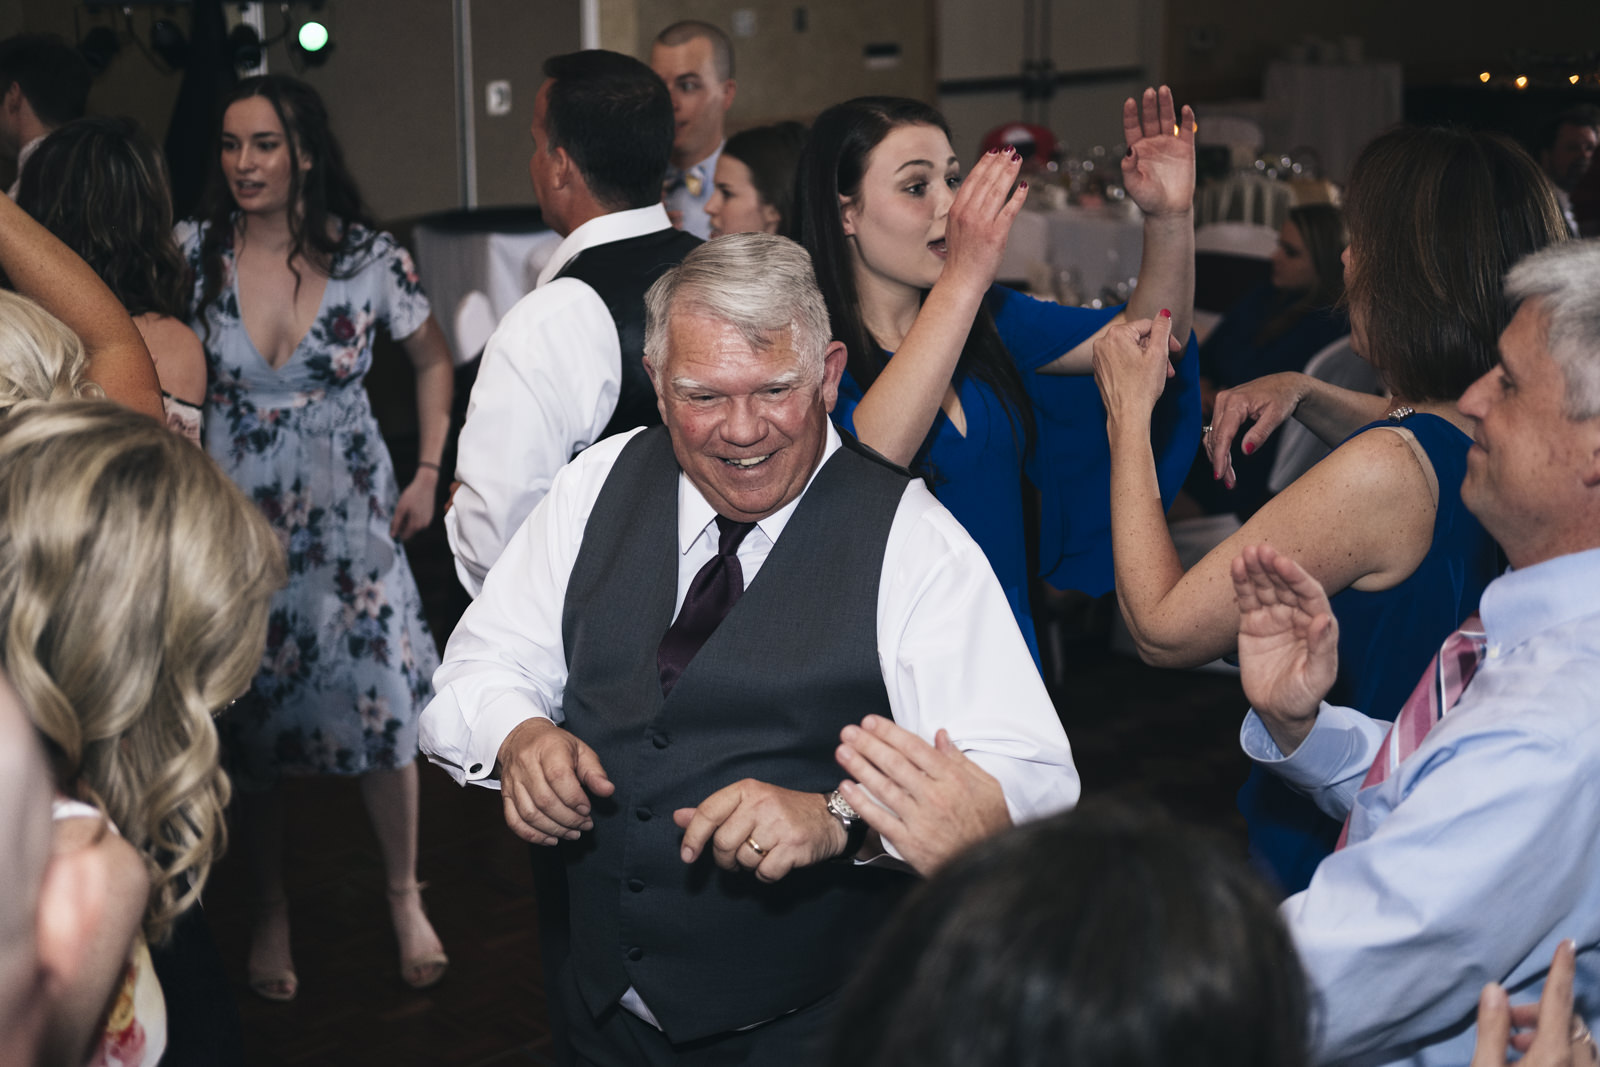 Father of the Groom dancing at wedding reception.